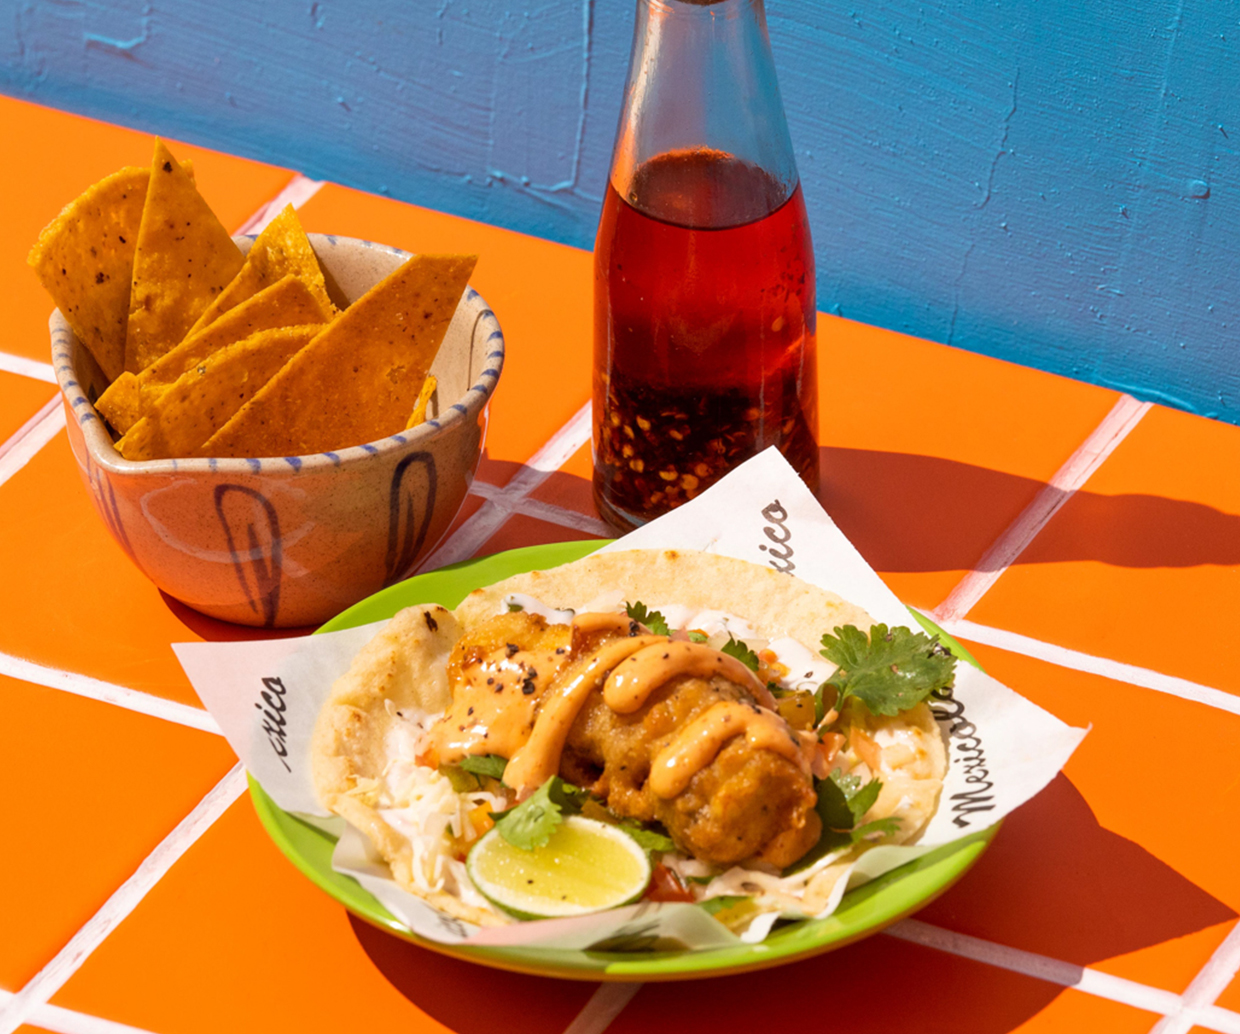 tacos and chips on tiled table with sangrita bottle